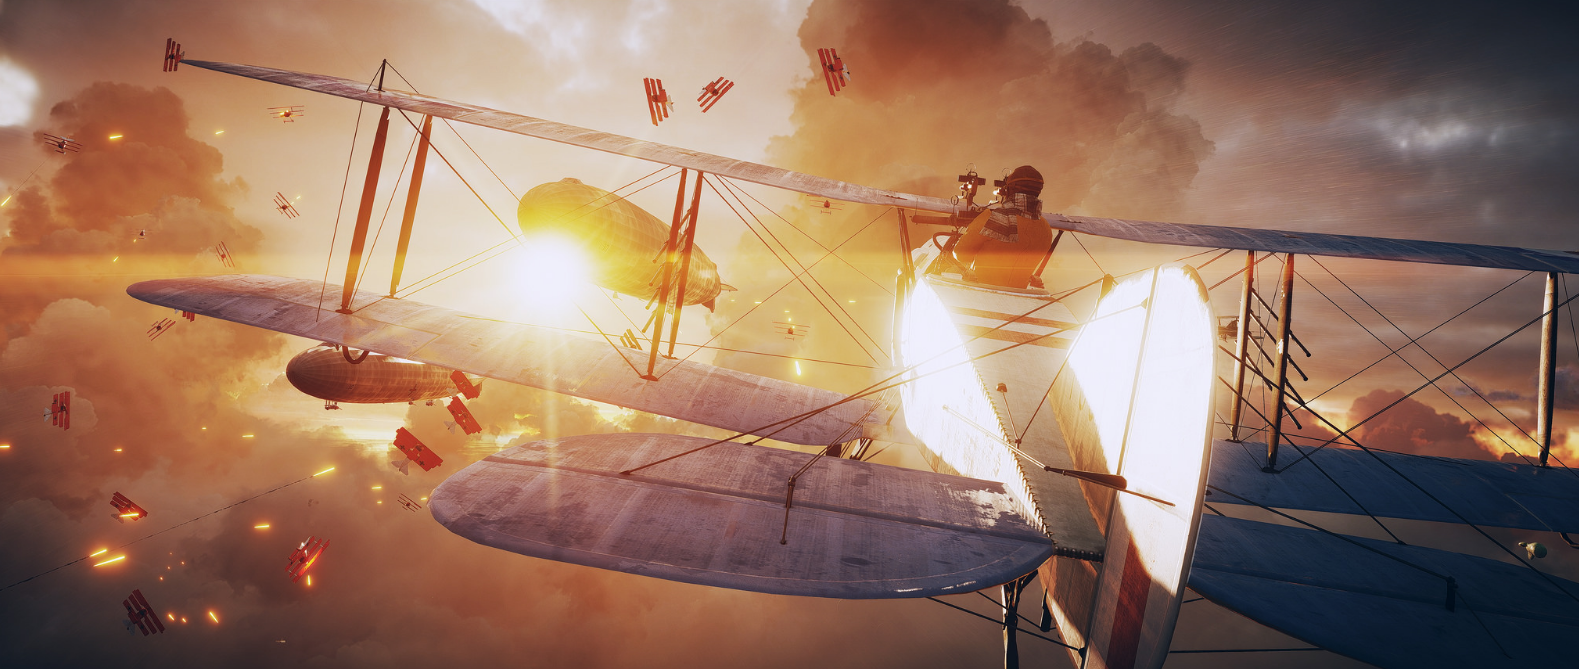 battlefield1screenshot1